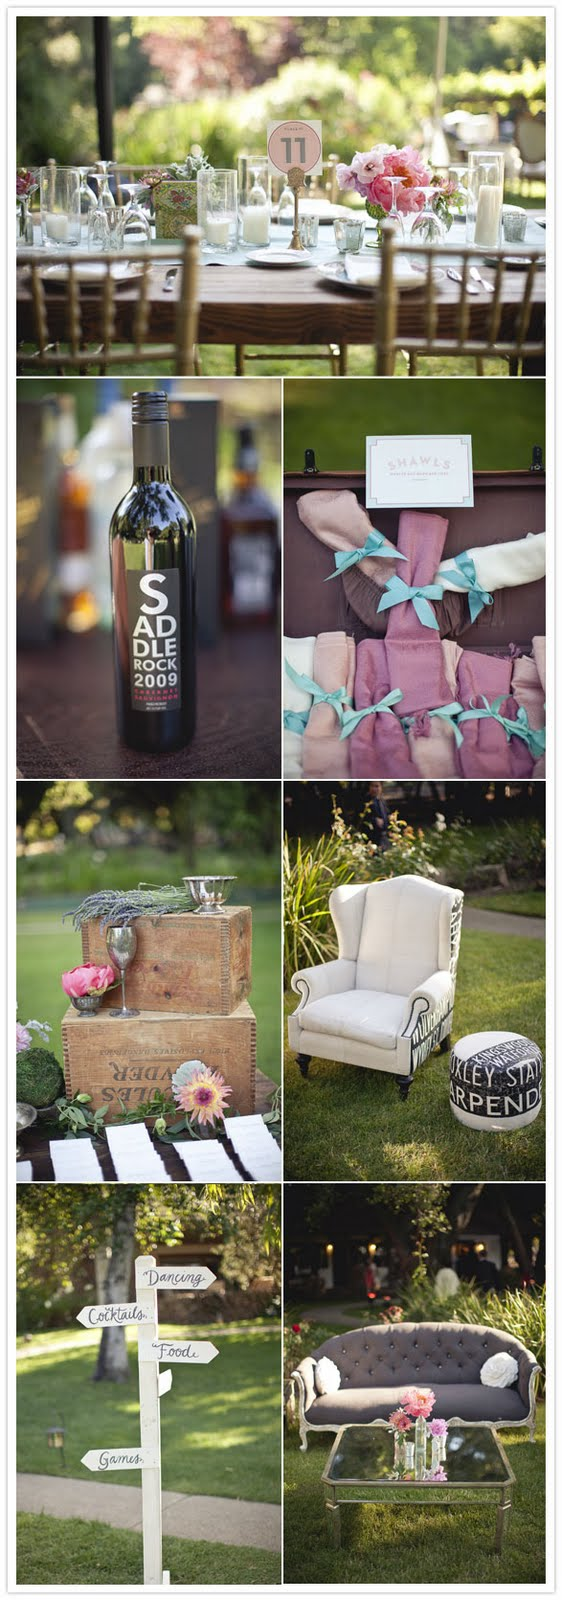 ideas para decorar boda aire libre vintage chic